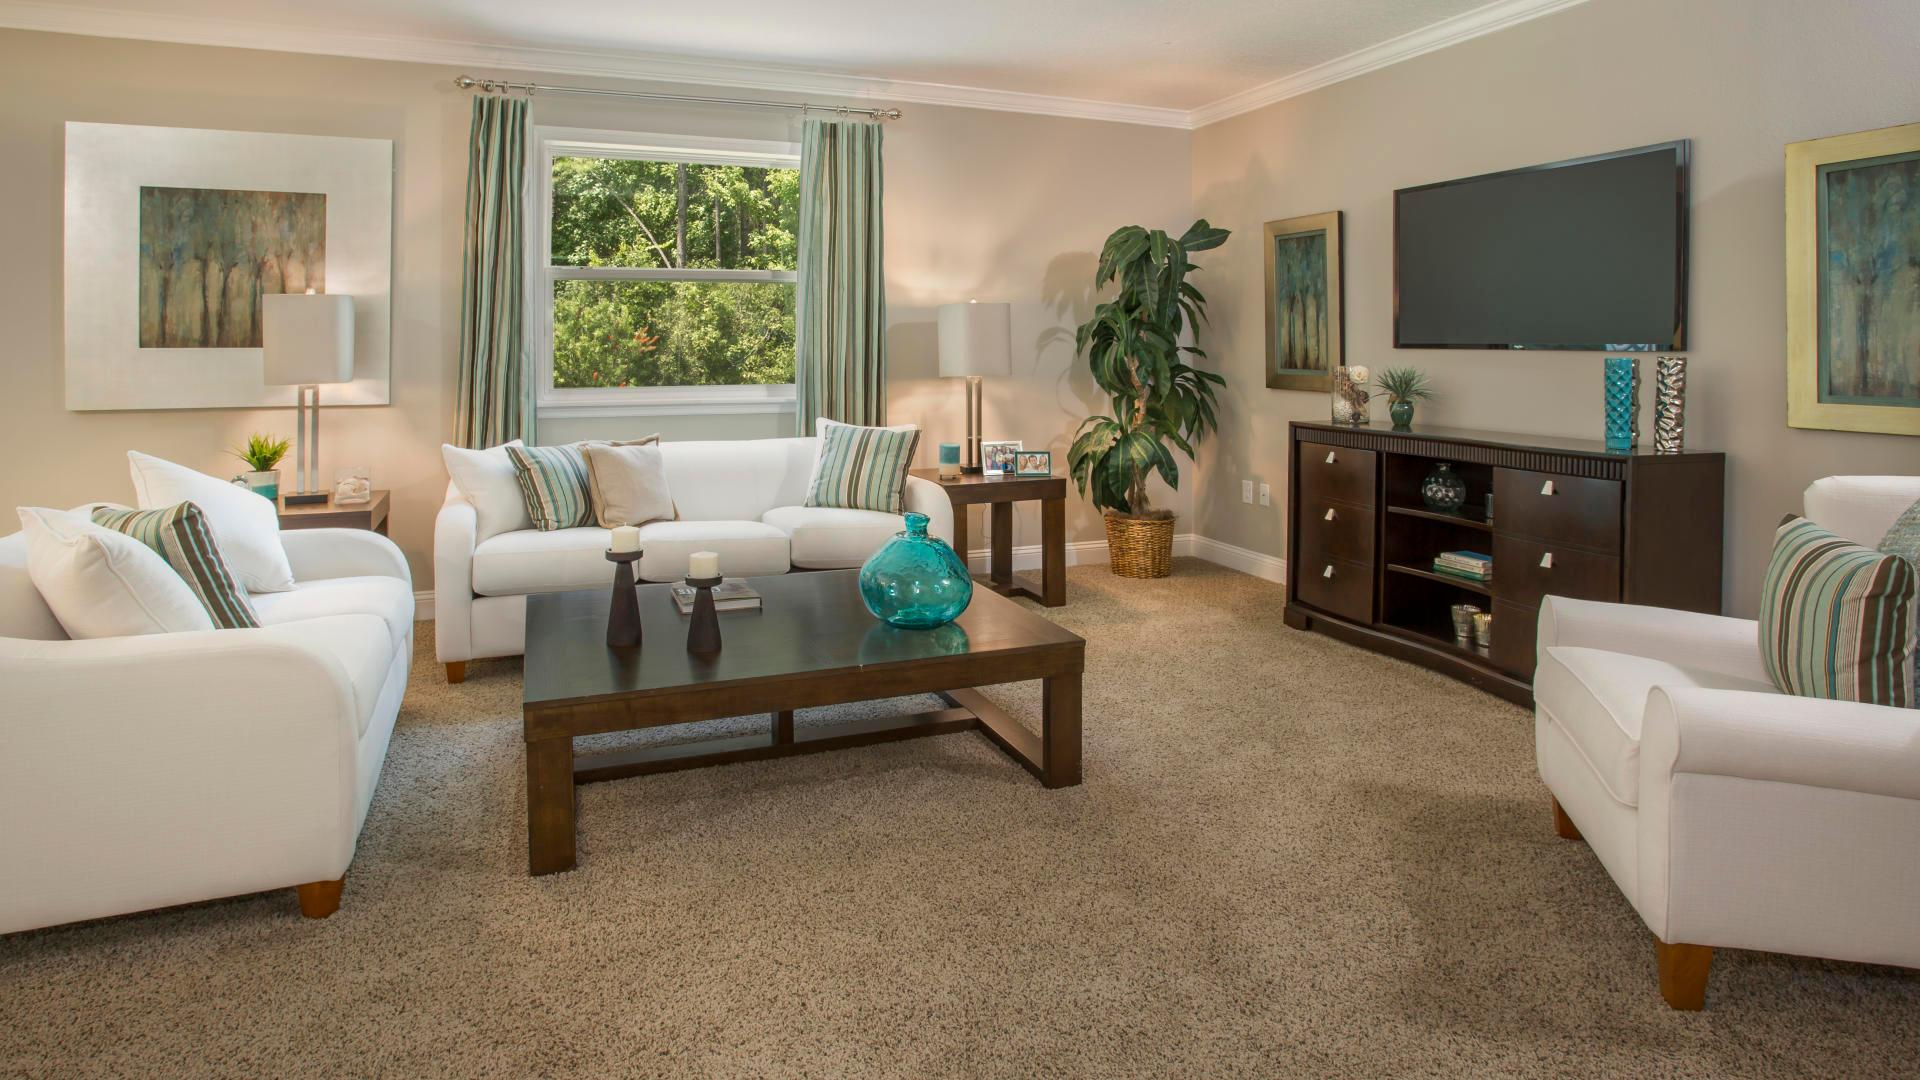 Living Area featured in the Baybury By Maronda Homes in Daytona Beach, FL